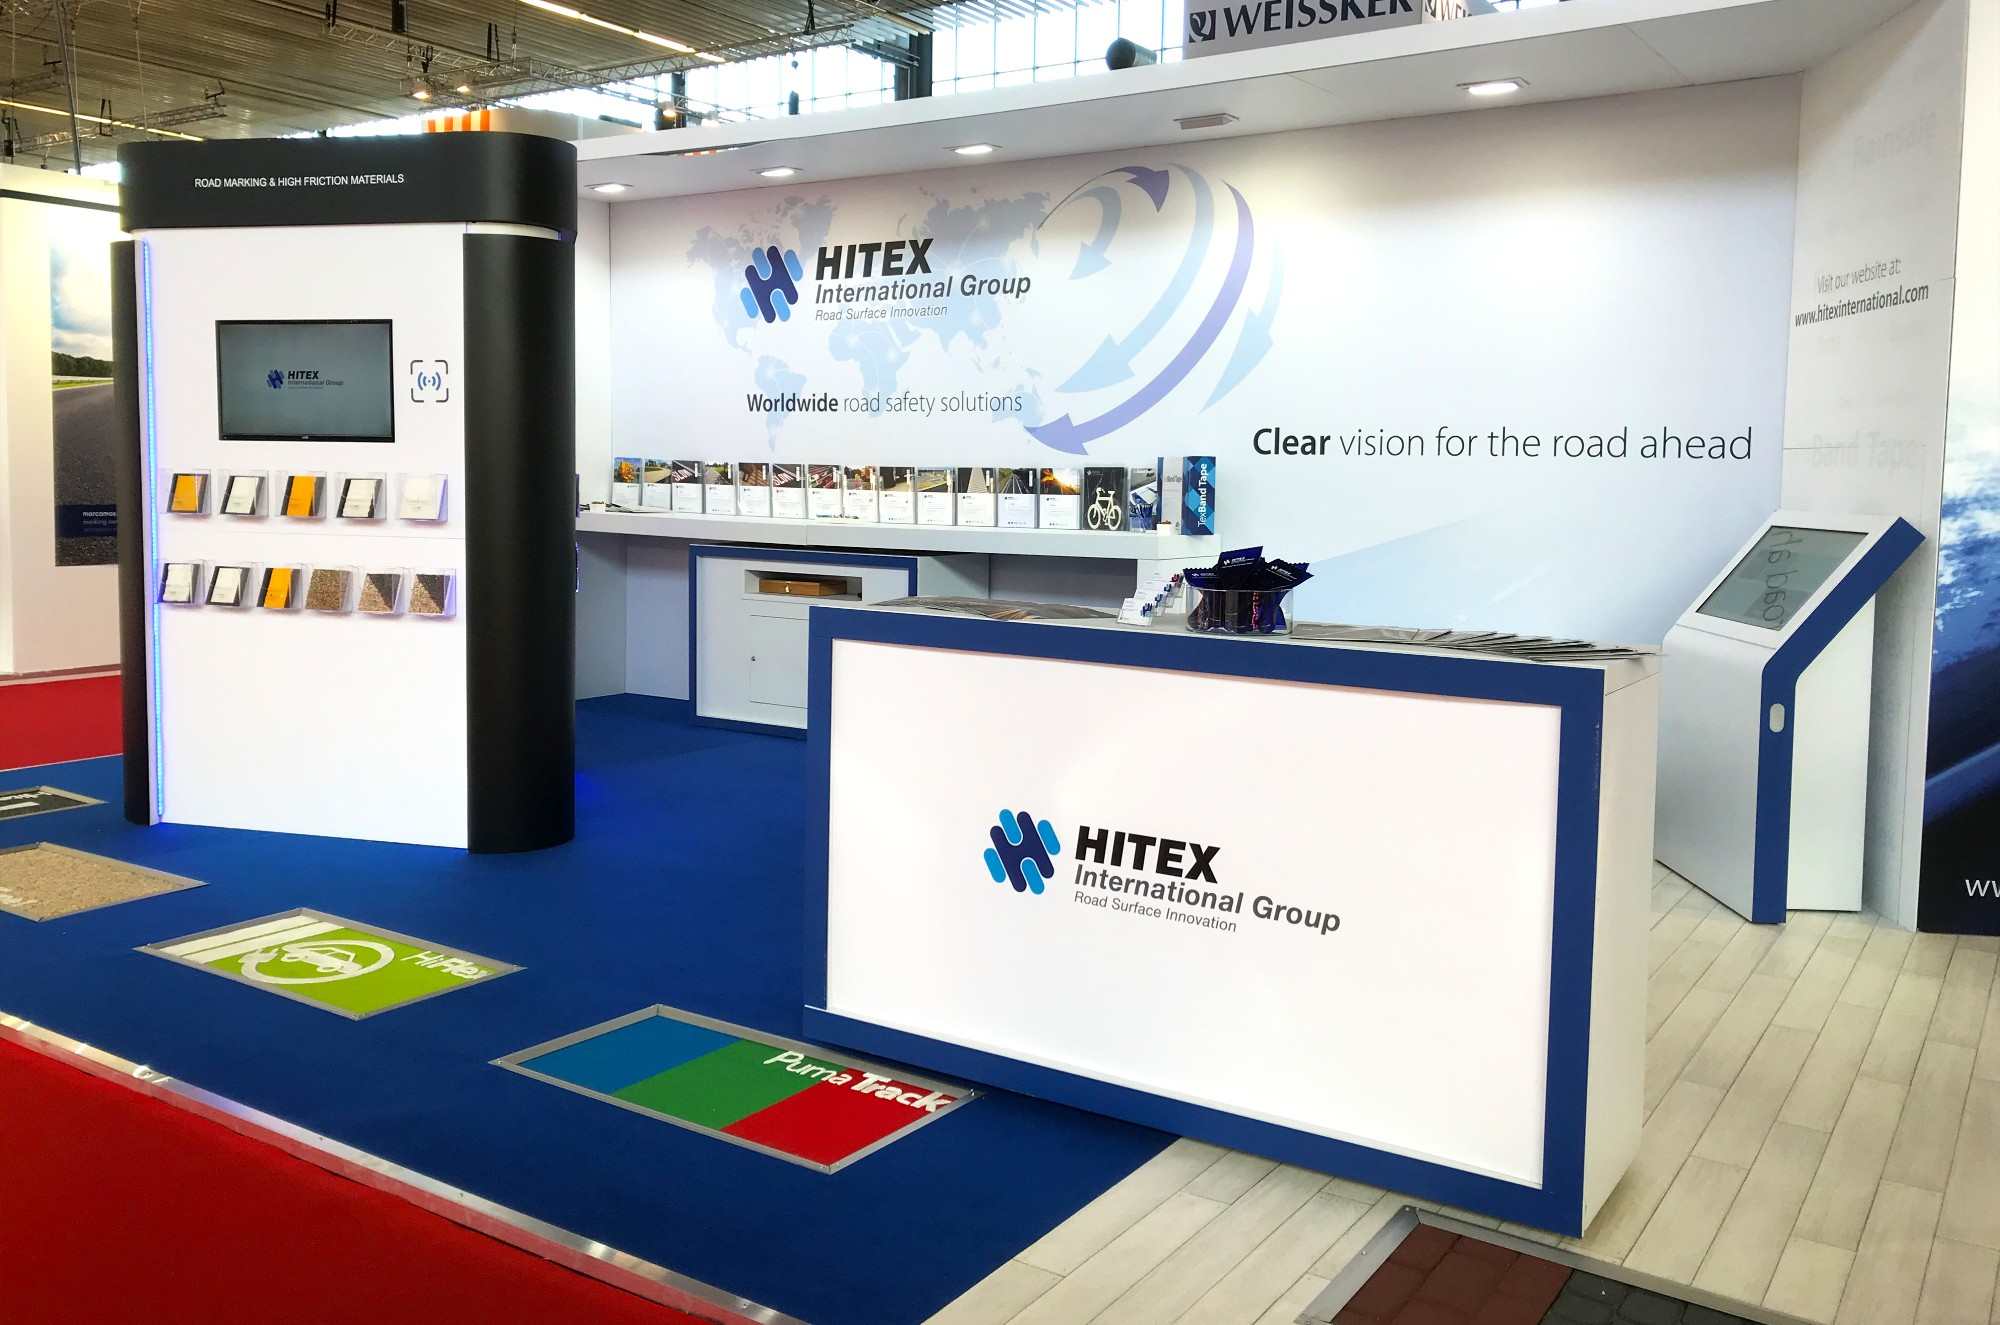 Hitex at Intertraffic 2018 5